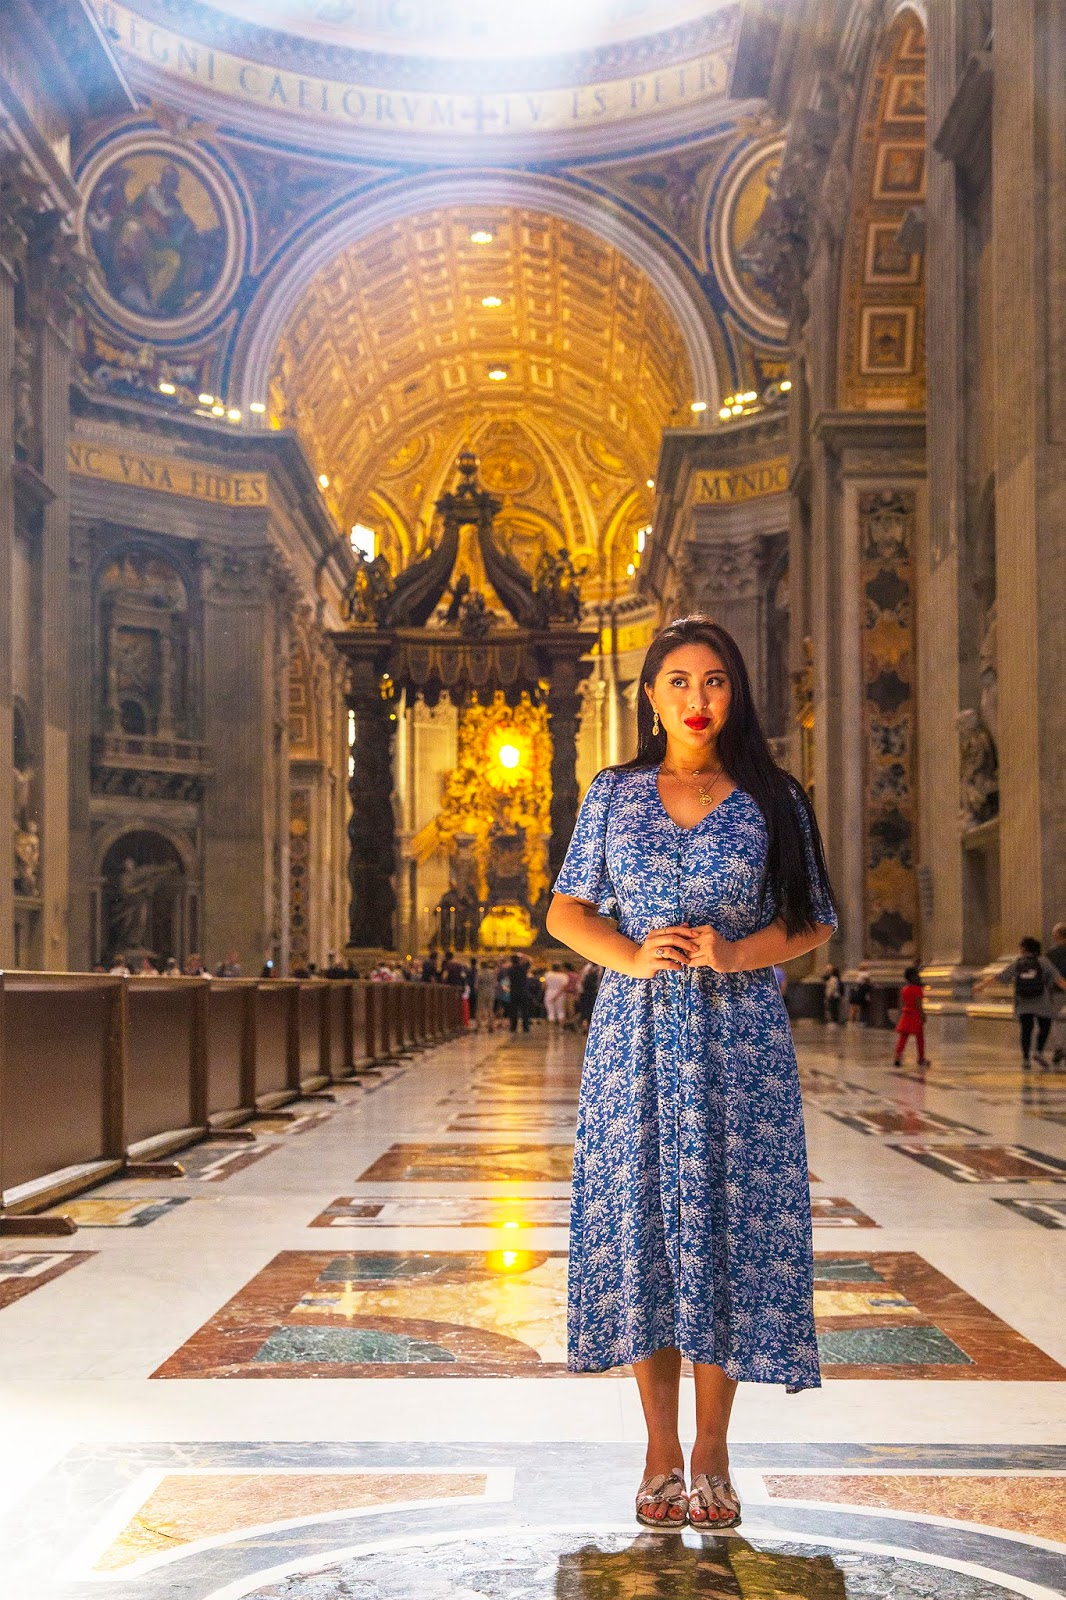 Rome, Italy by Posh, Broke, & Bored - St Peter's Basilica